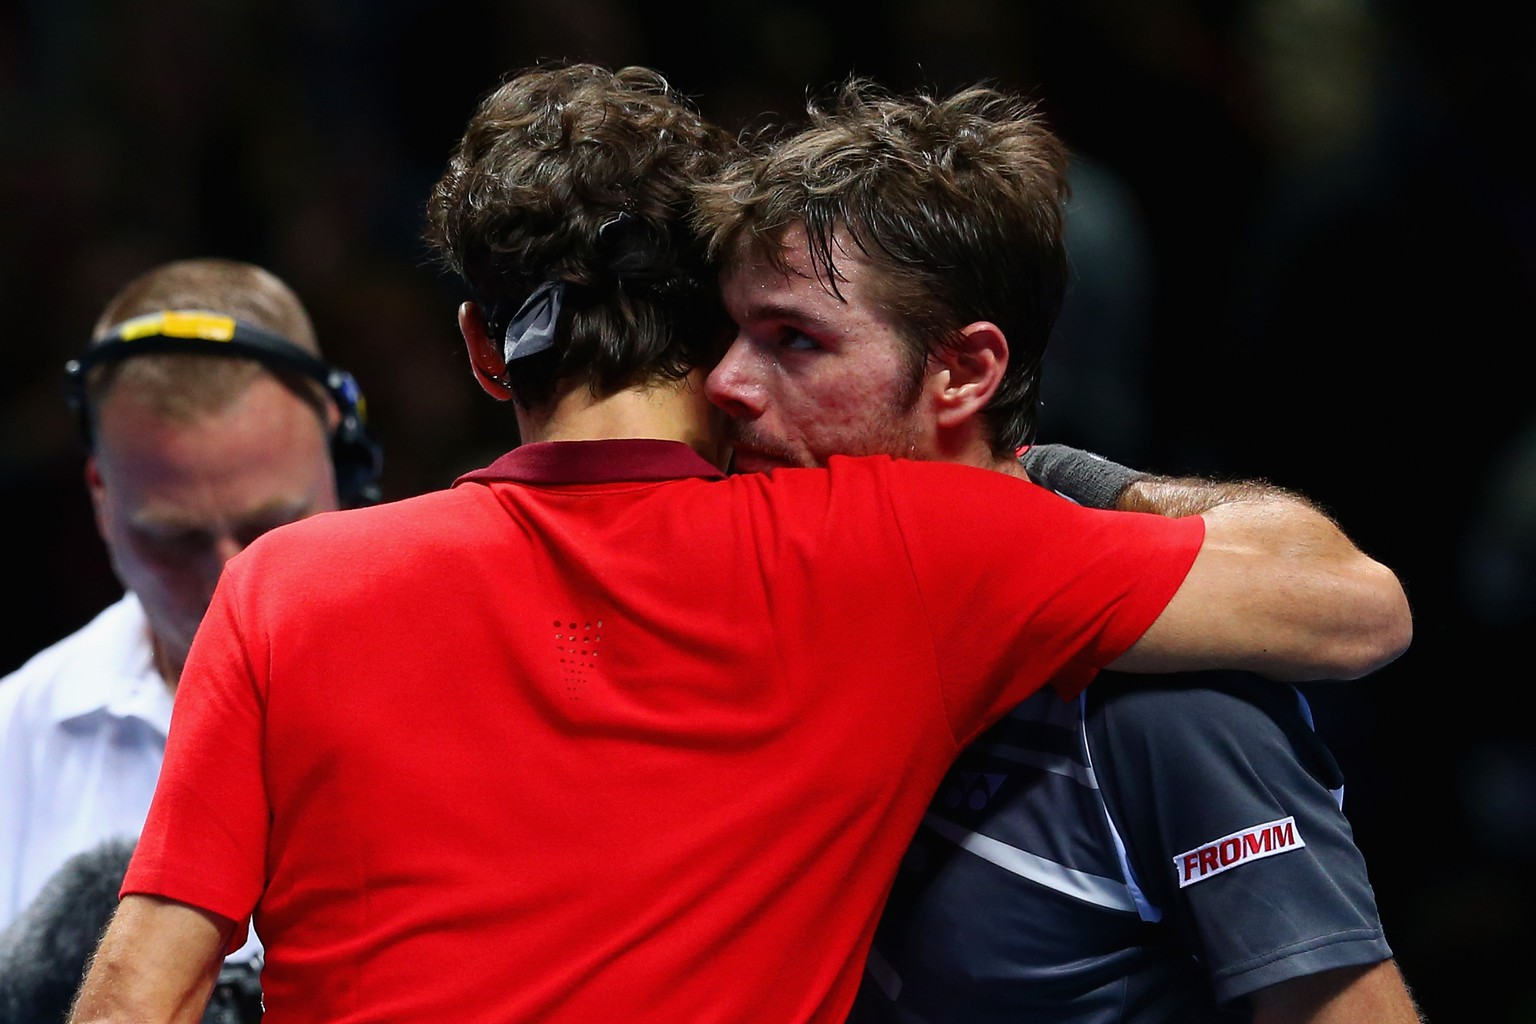 LONDON, ENGLAND - NOVEMBER 15:  Roger Federer of Switzerland hugs Stan Wawrinka of Switzerland afte the singles semi-final match  on day seven of the Barclays ATP World Tour Finals at O2 Arena on November 15, 2014 in London, England.  (Photo by Clive Brunskill/Getty Images)